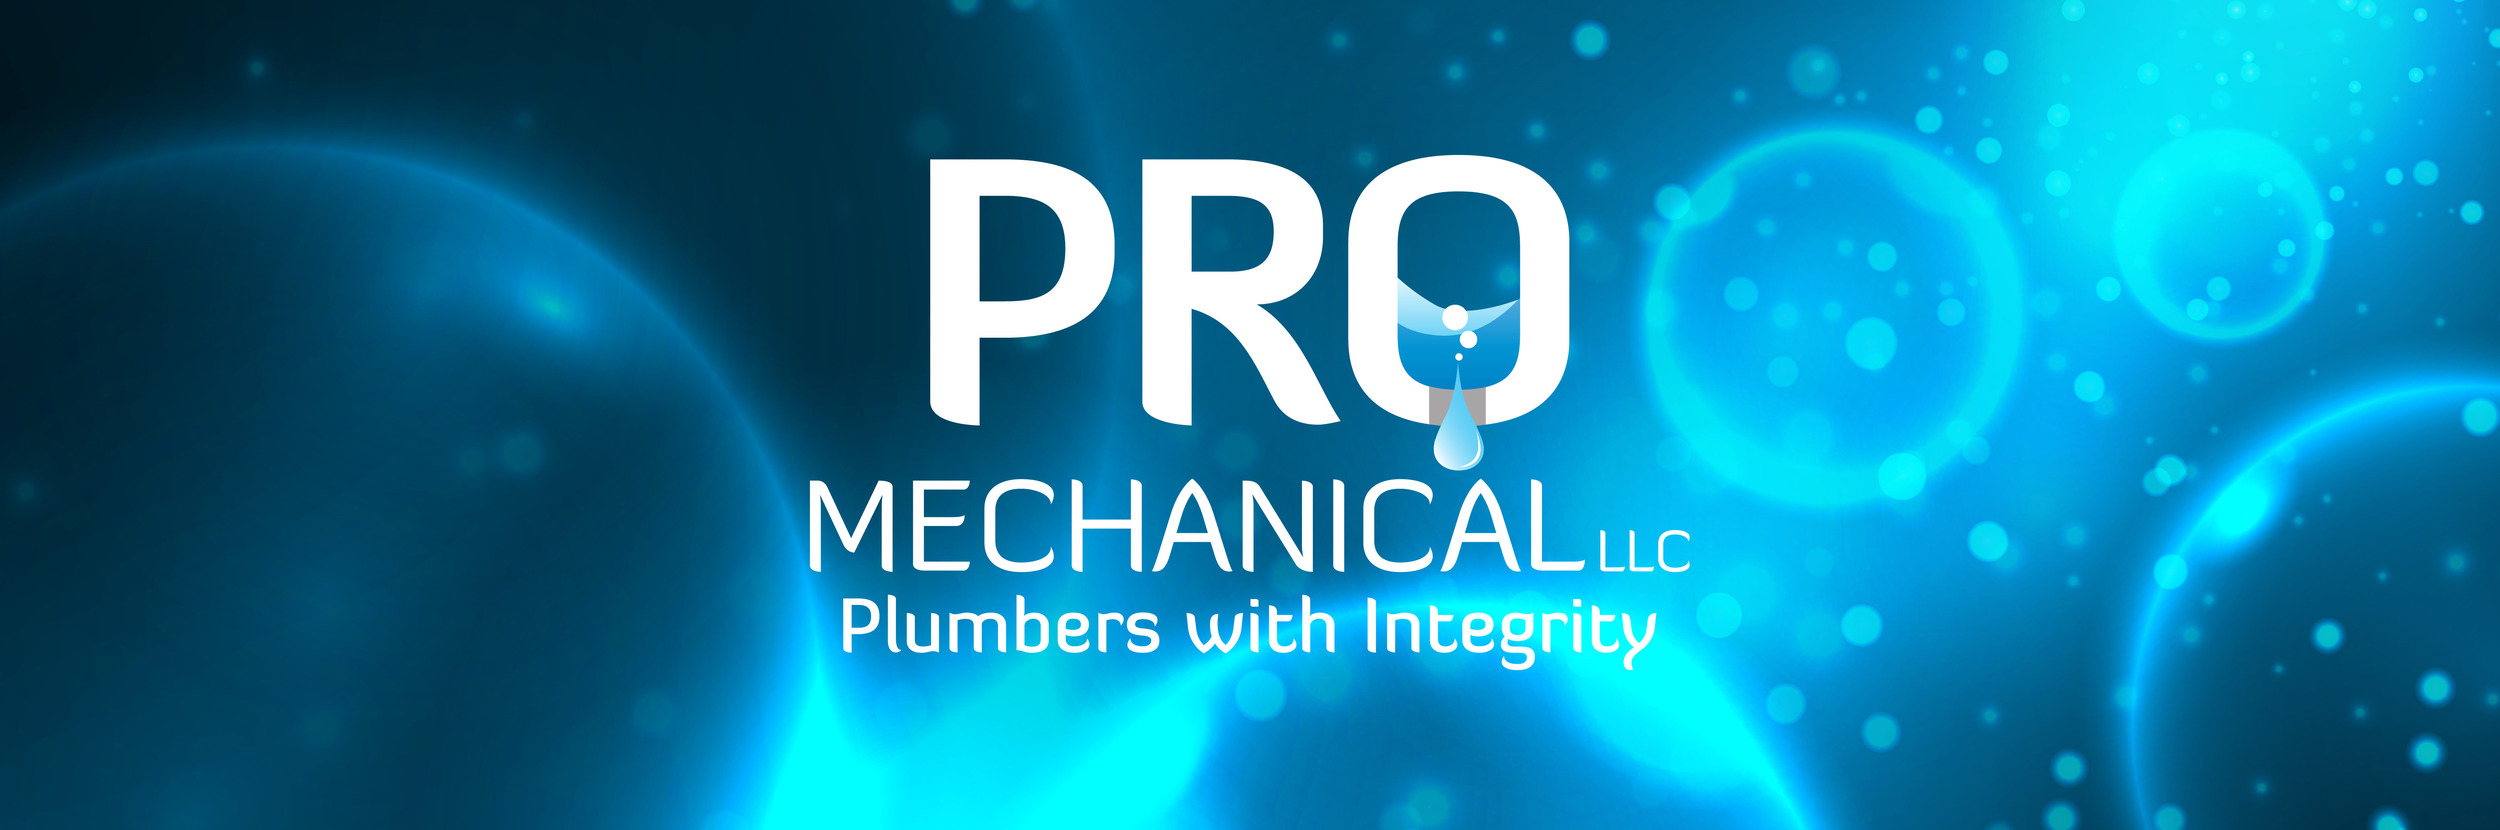 Pro Mechanical_web banner_v1.jpg